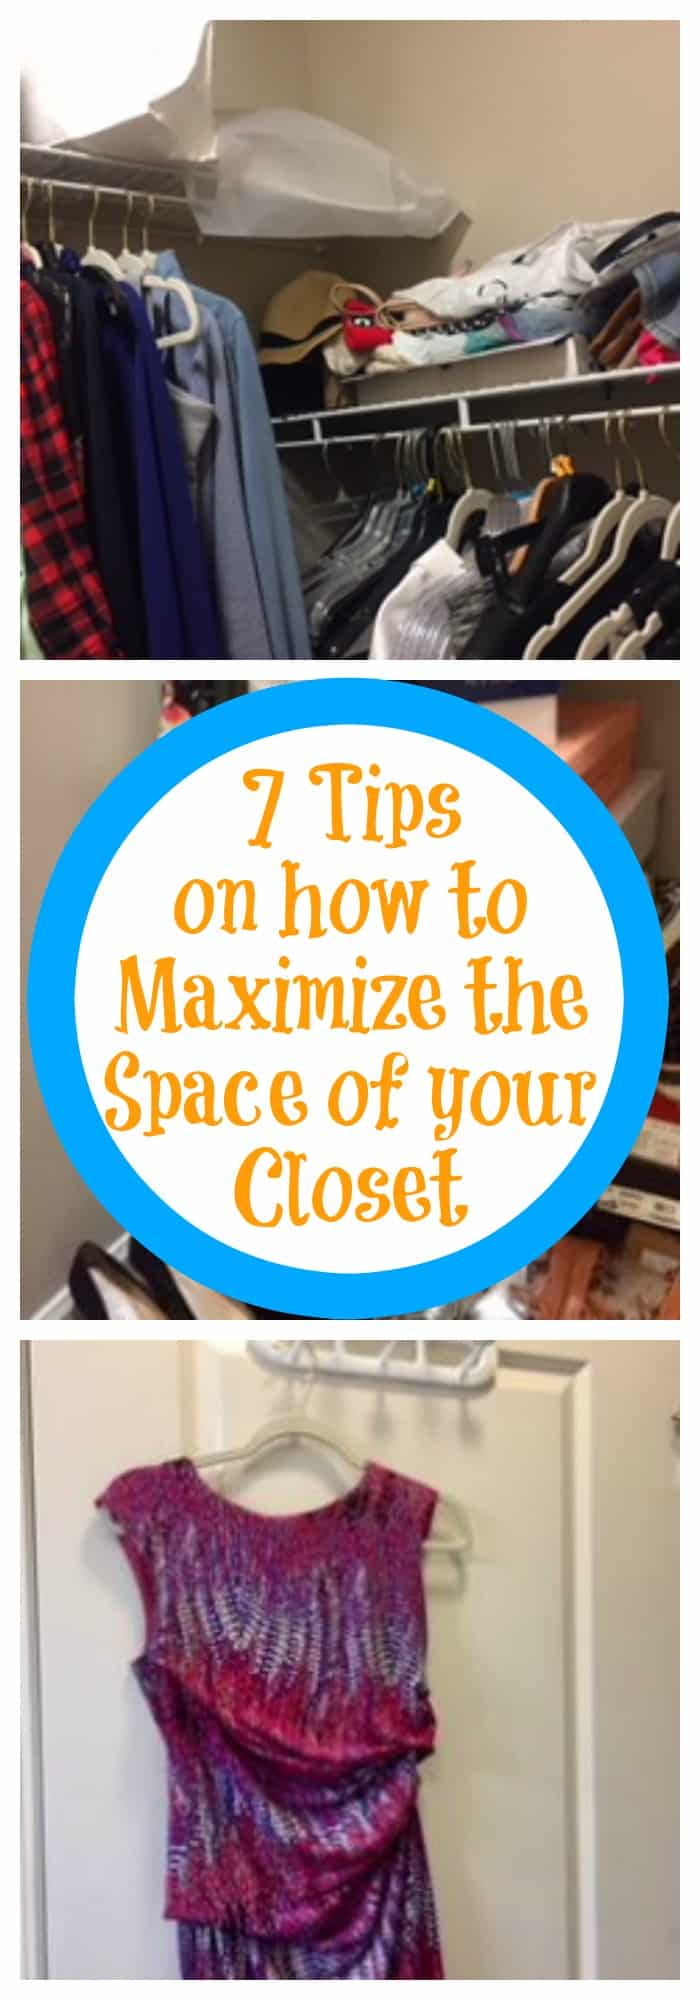 Organizartion--7 Tips on How to Maximize the Space in Your Closet--The Organized Mom